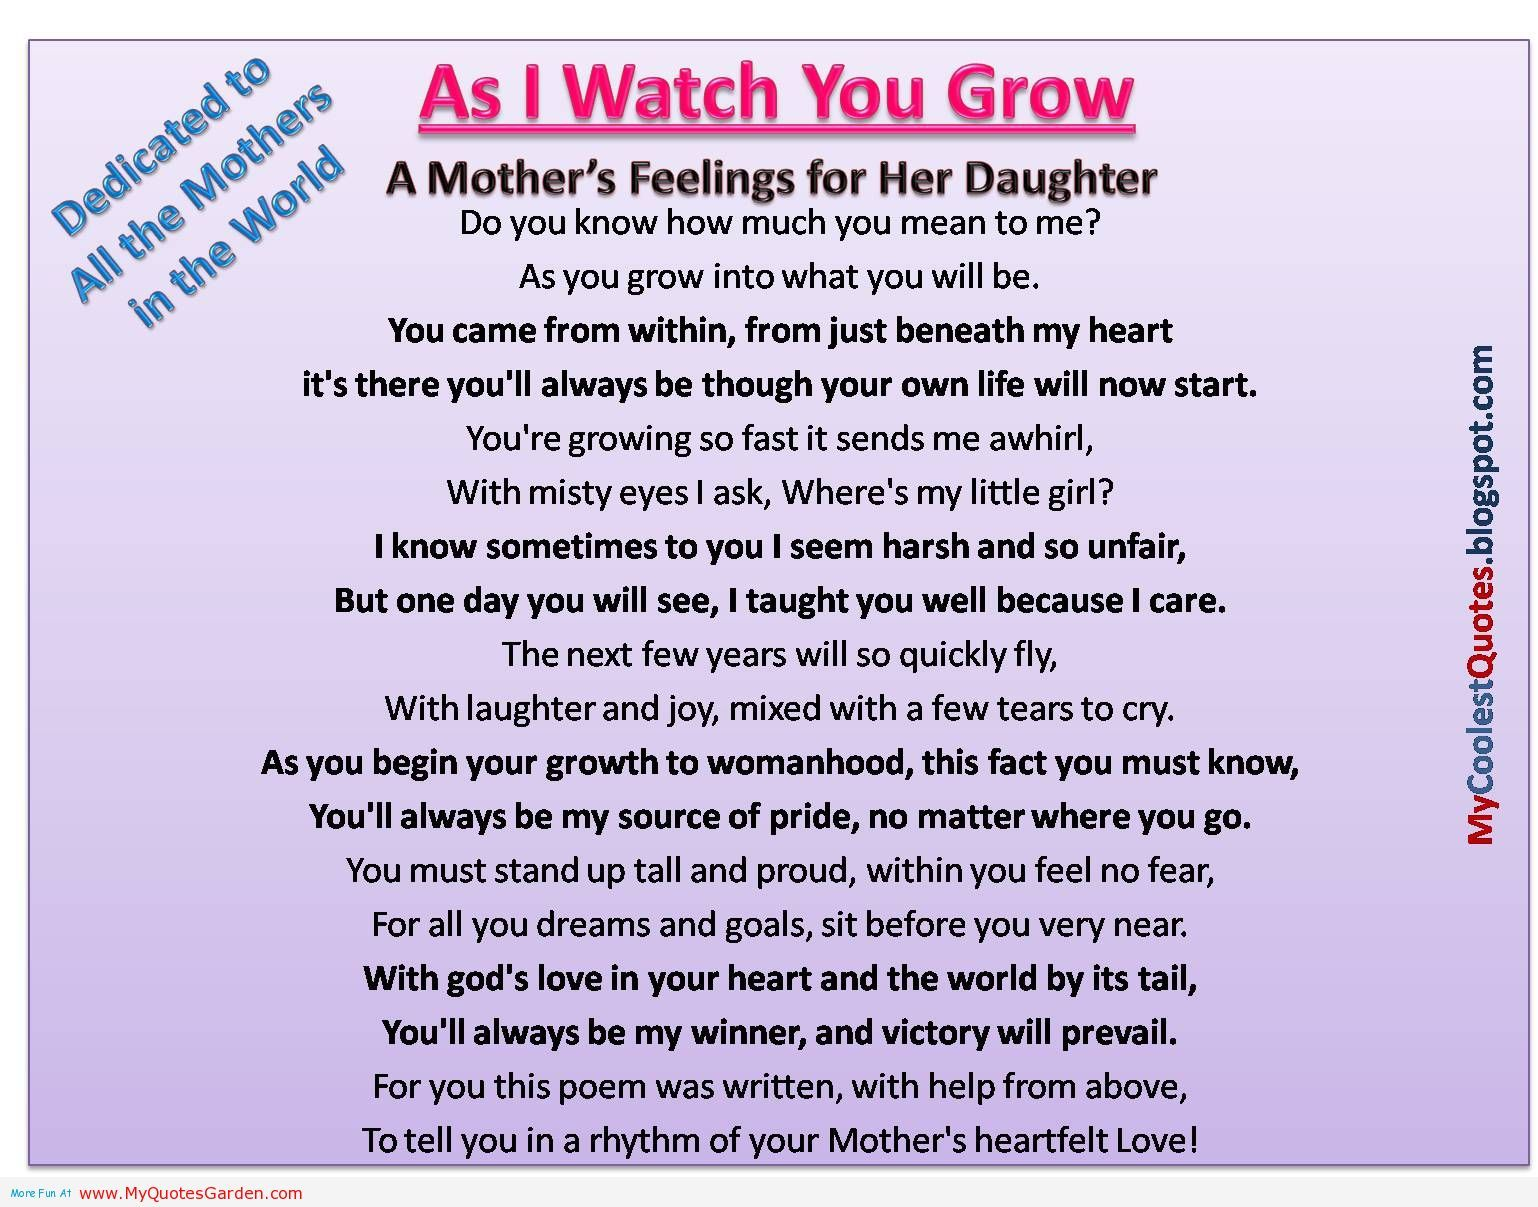 Mothers And Daughters Quotes Mother's Love For Her Daughter When She Was Growing Up  Mother